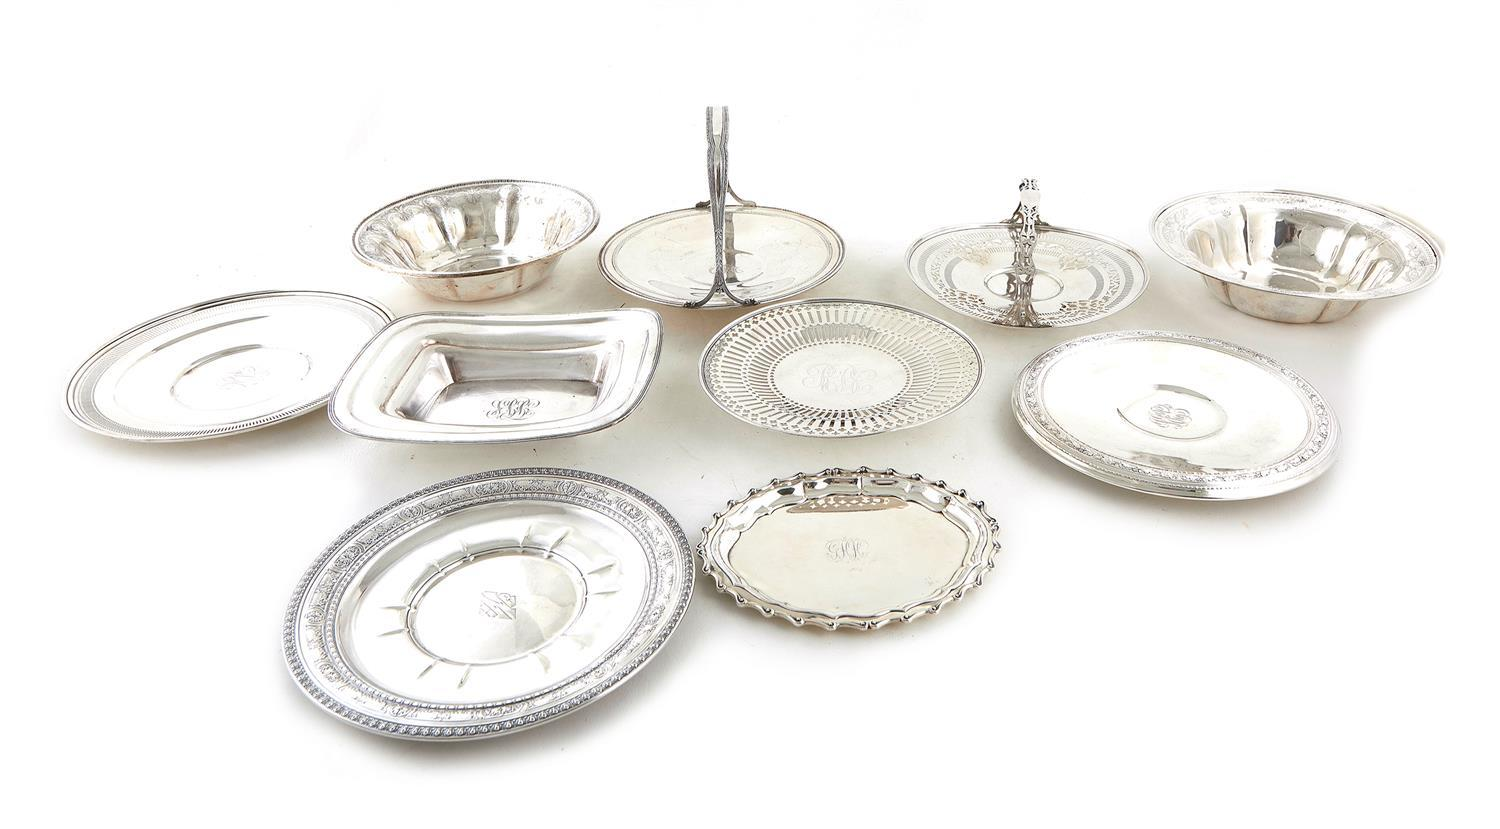 American silver trays, dishes, and baskets (10pcs)